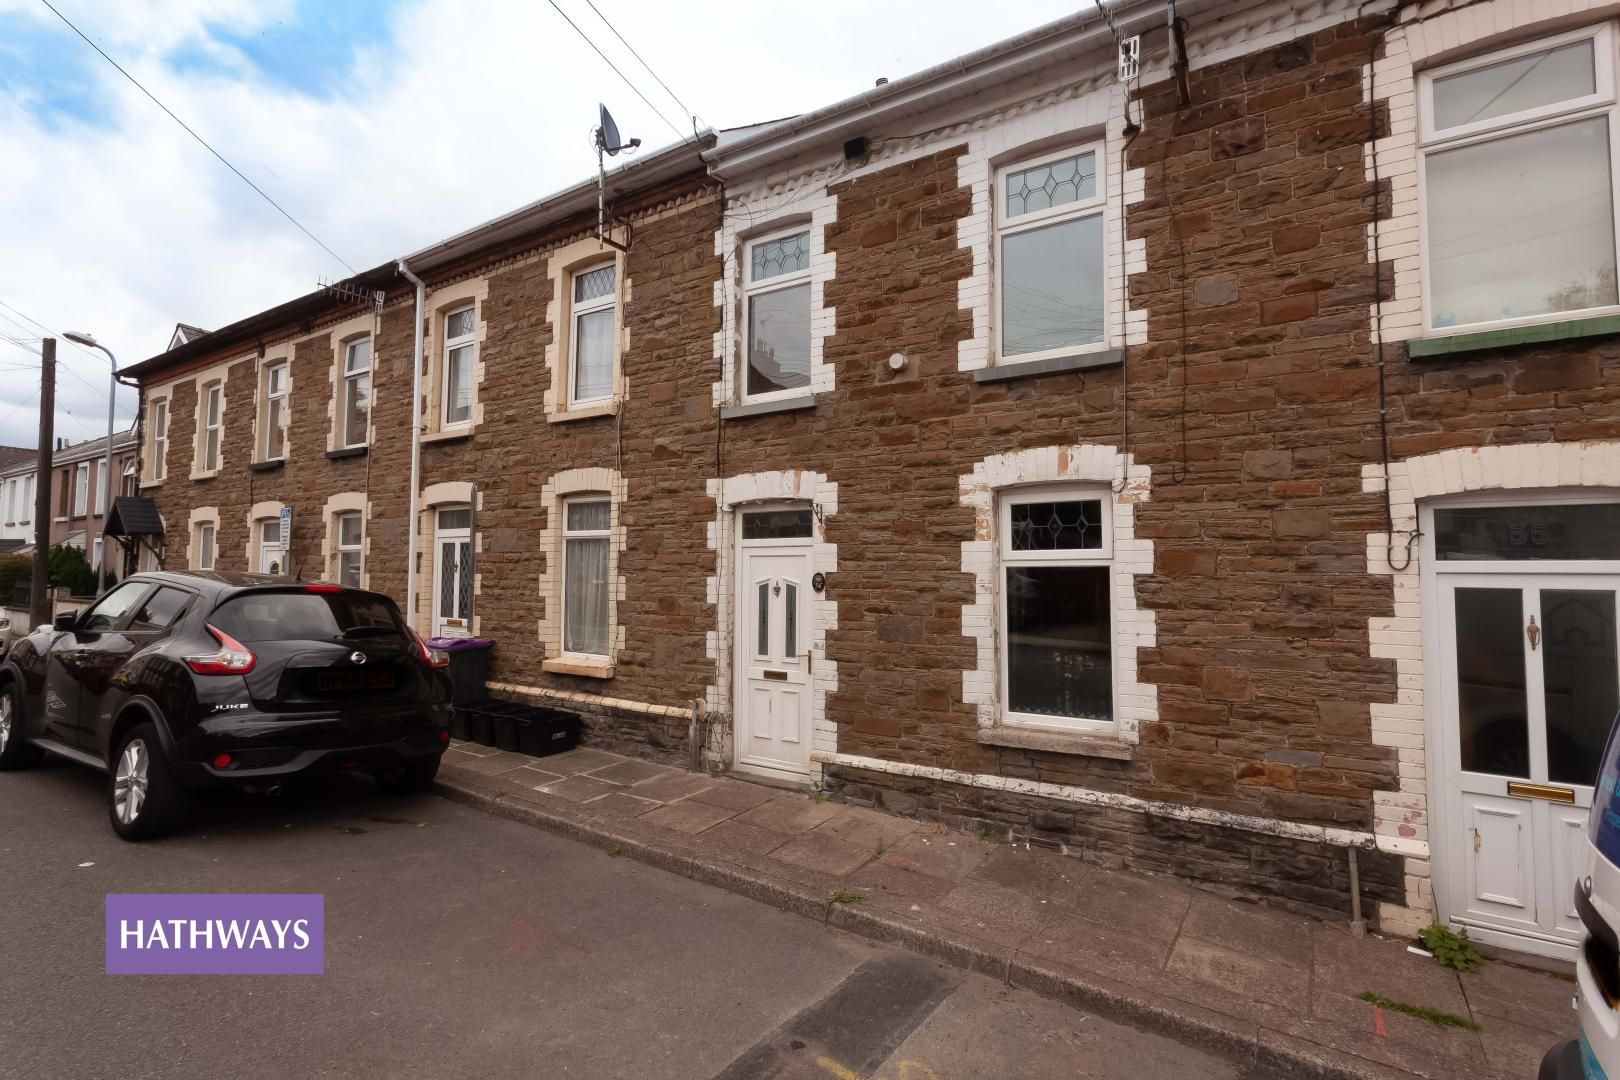 3 bed house for sale in Broad Street, NP4